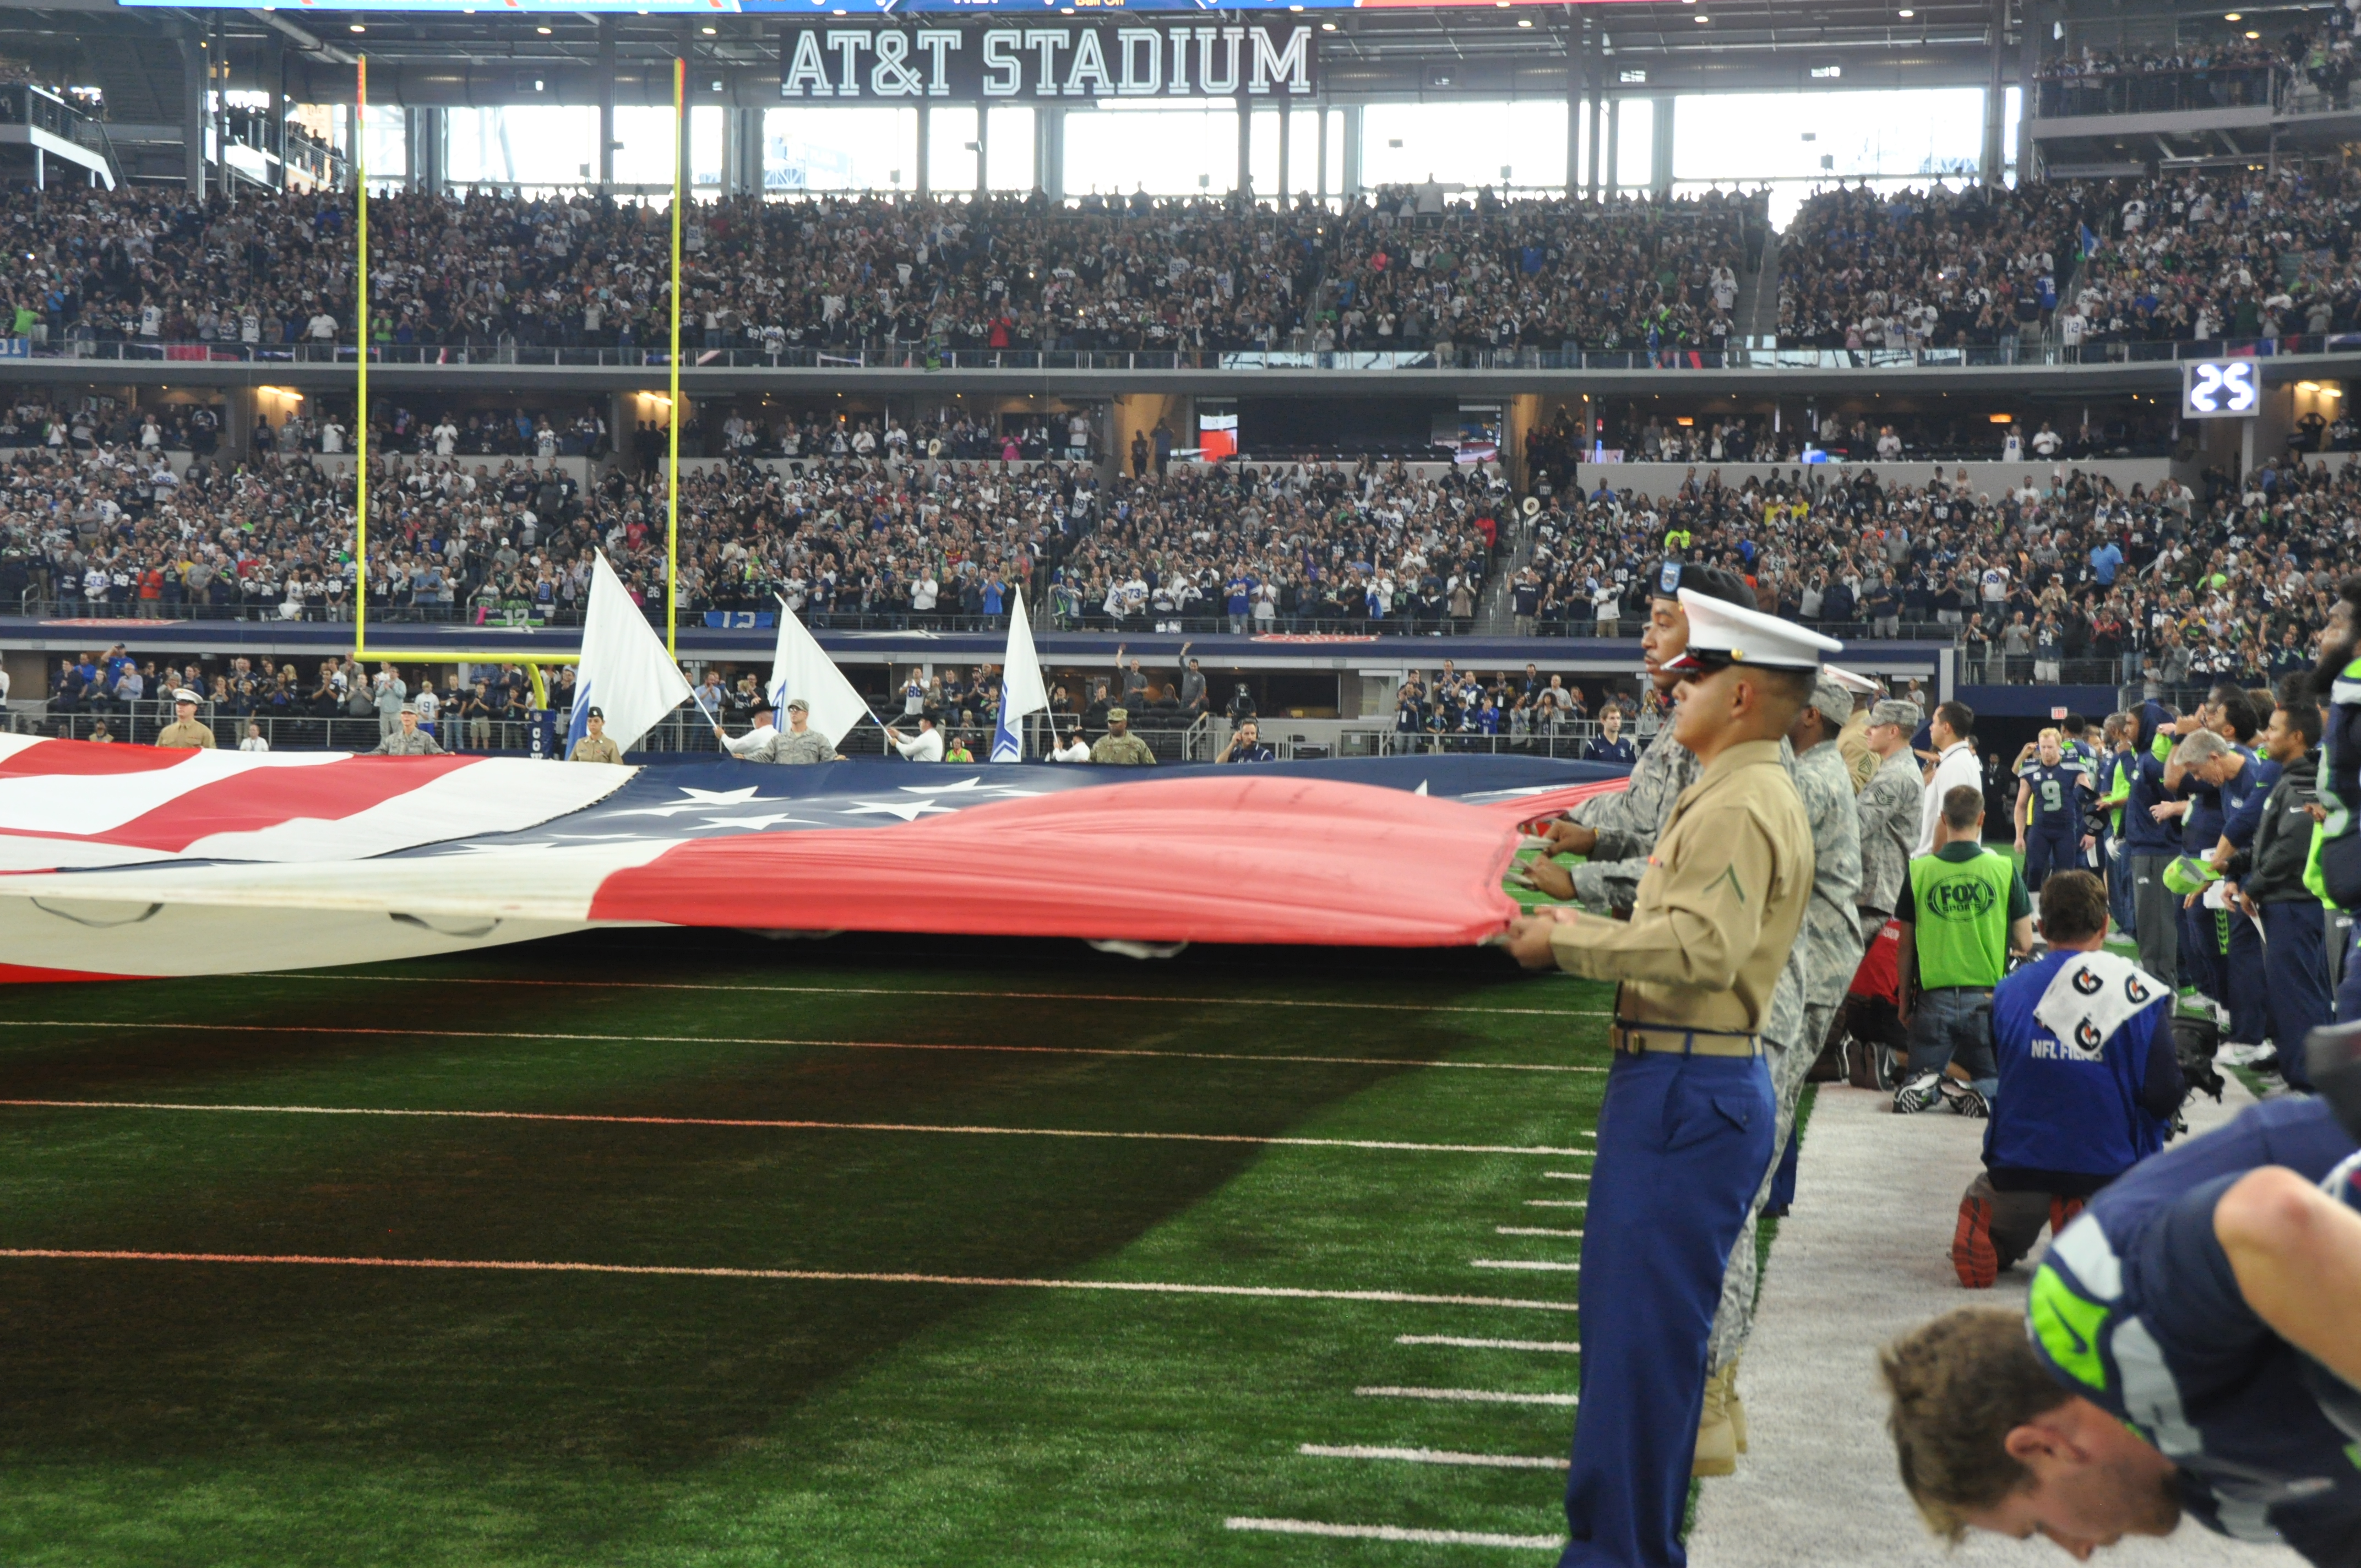 Dallas Cowboy flag detail shows military jointness in Fort Worth